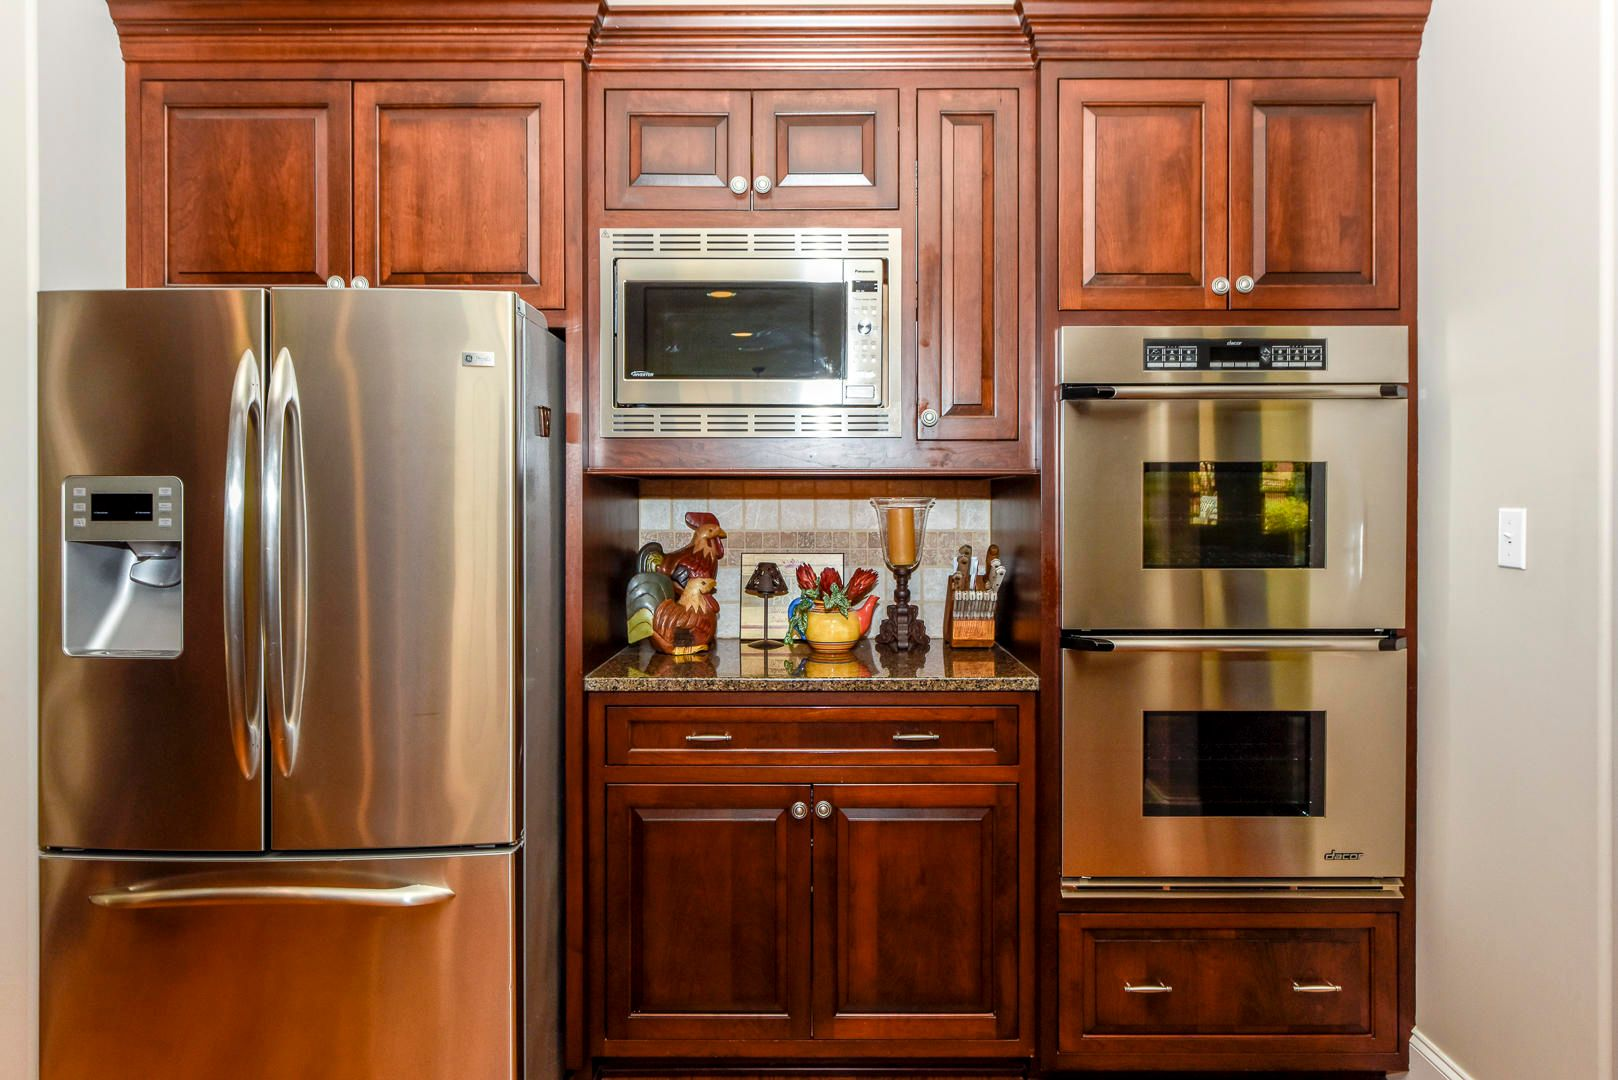 Stainles Dacor appliances